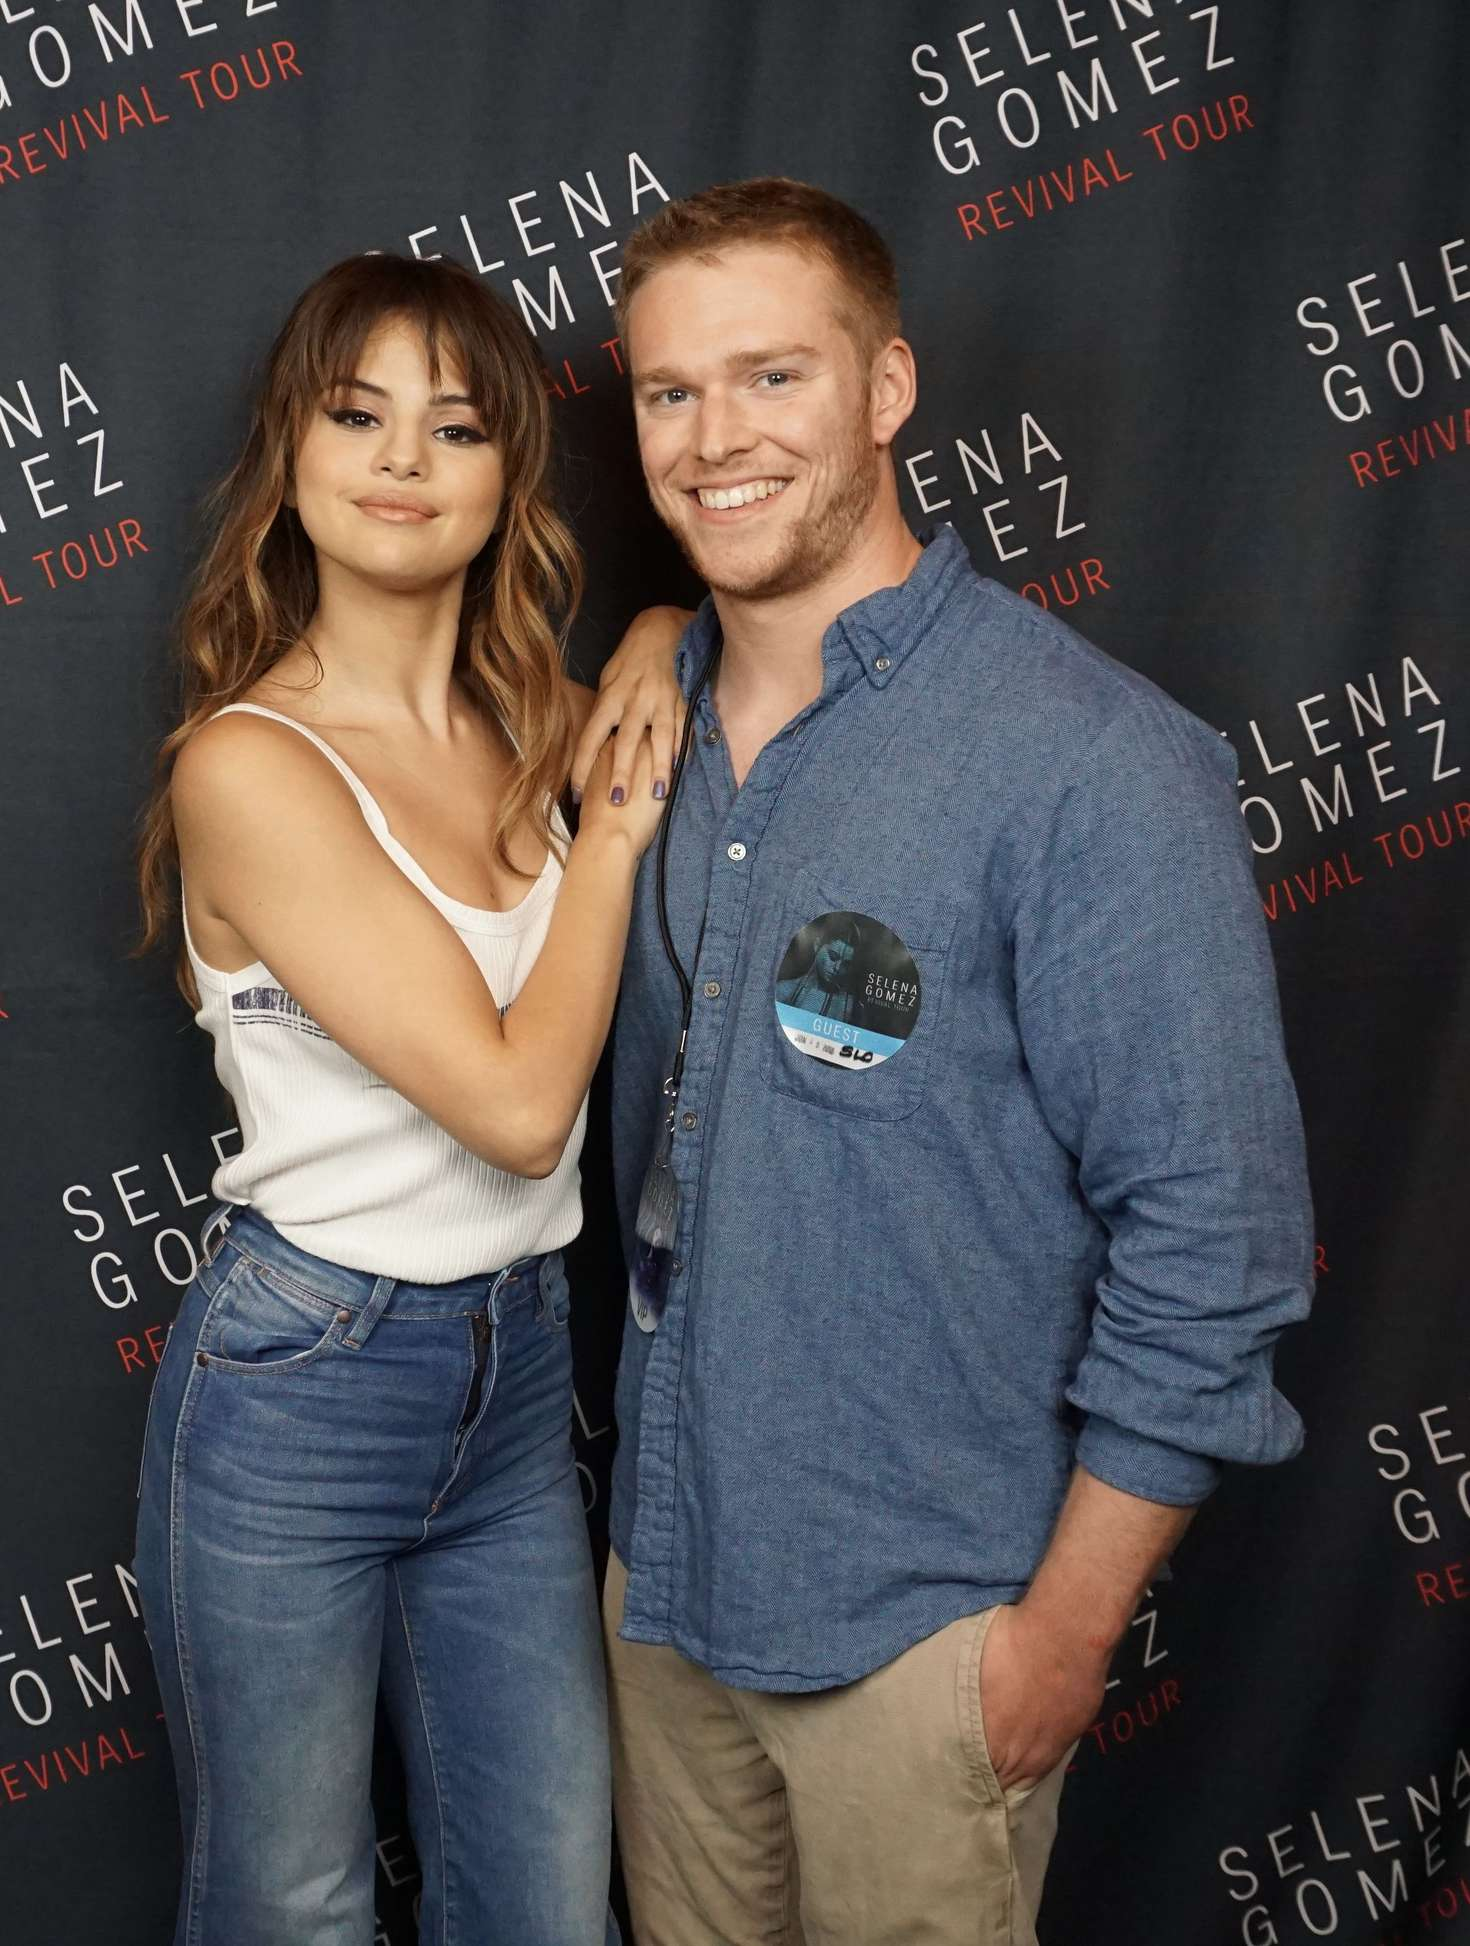 Selena gomez meet and greet at the revival world tour in chicago selena gomez meet and greet at the revival world tour kristyandbryce Gallery